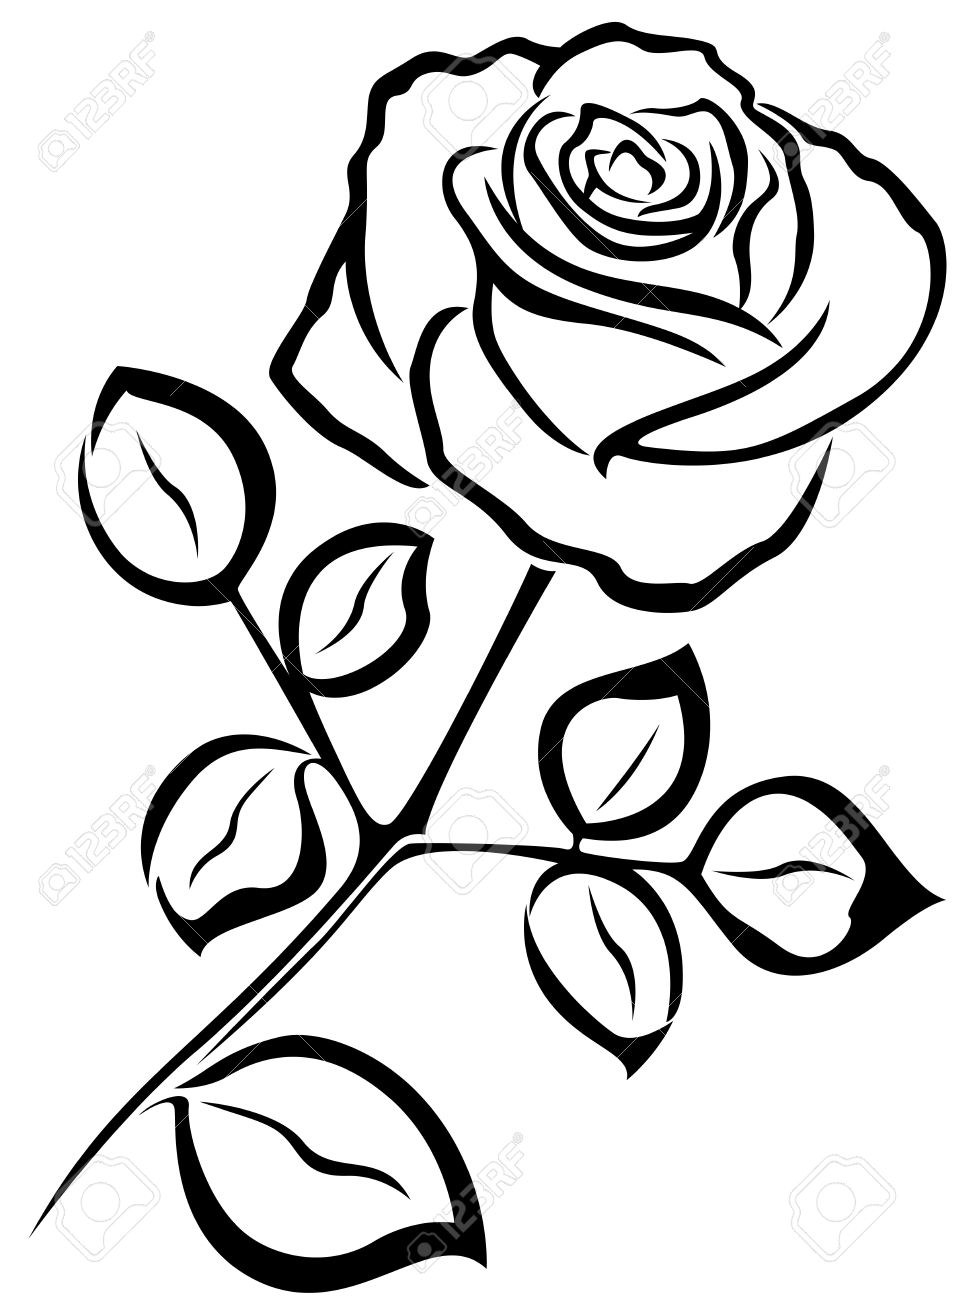 Rose Clipart Black And White Outline.